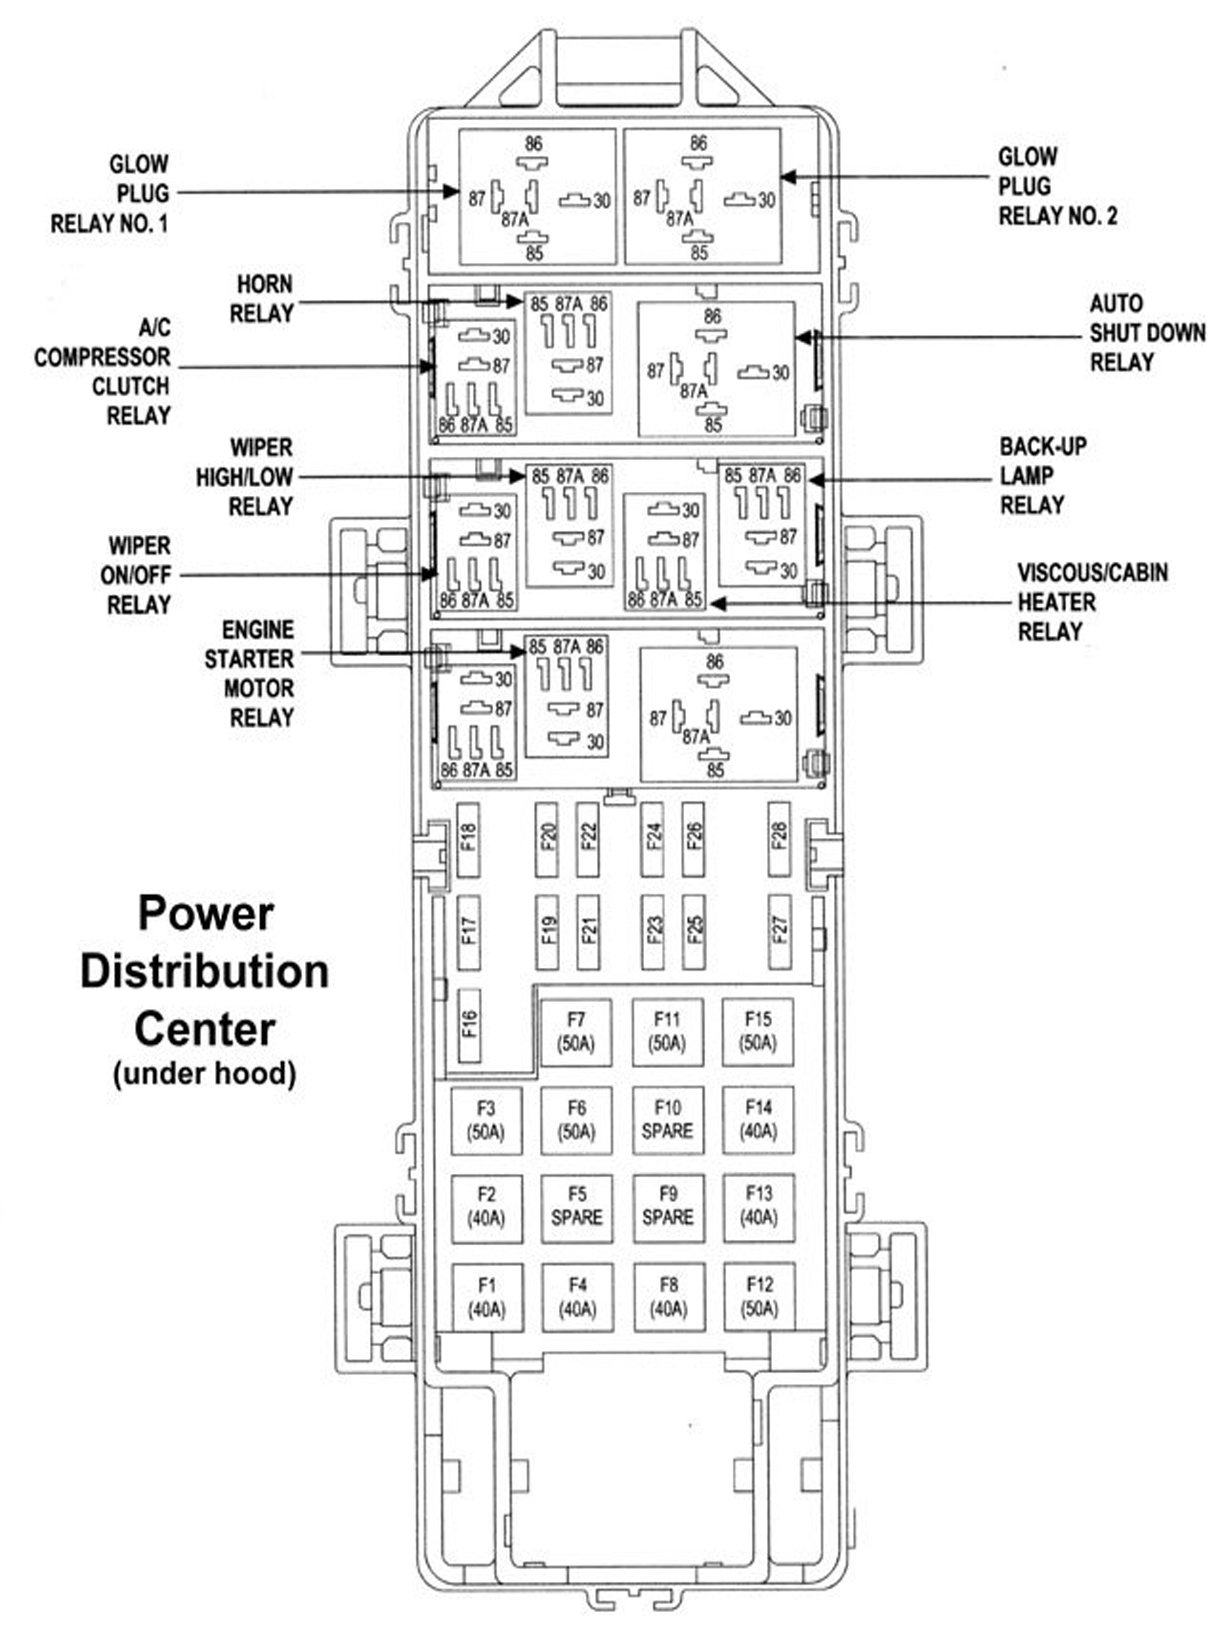 Jeep Grand Cherokee Zj Fuse Box Diagram